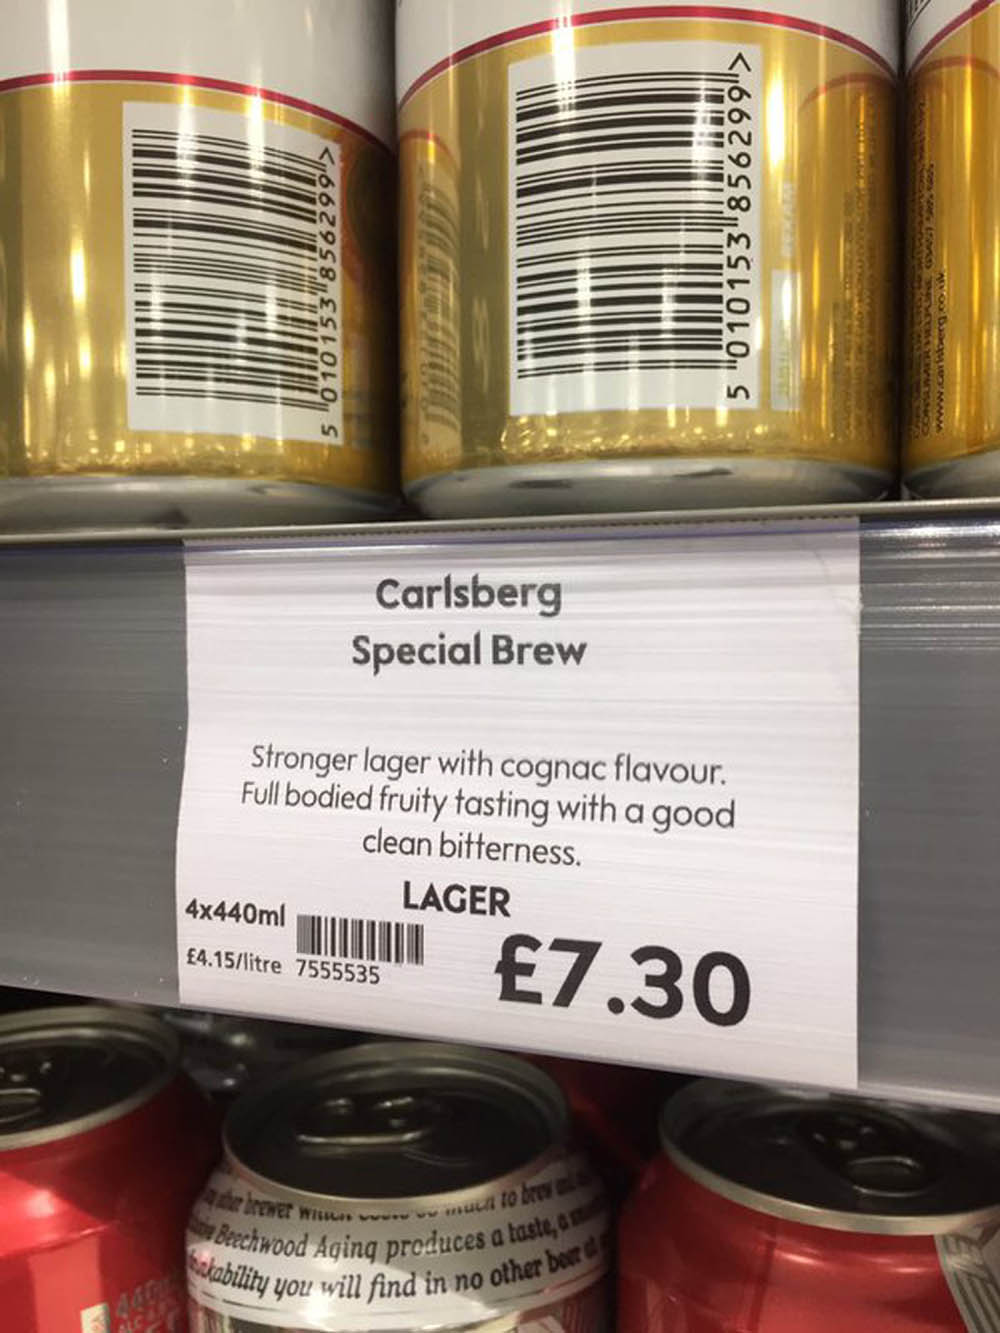 Waitrose said they provide tasting notes for all their beers